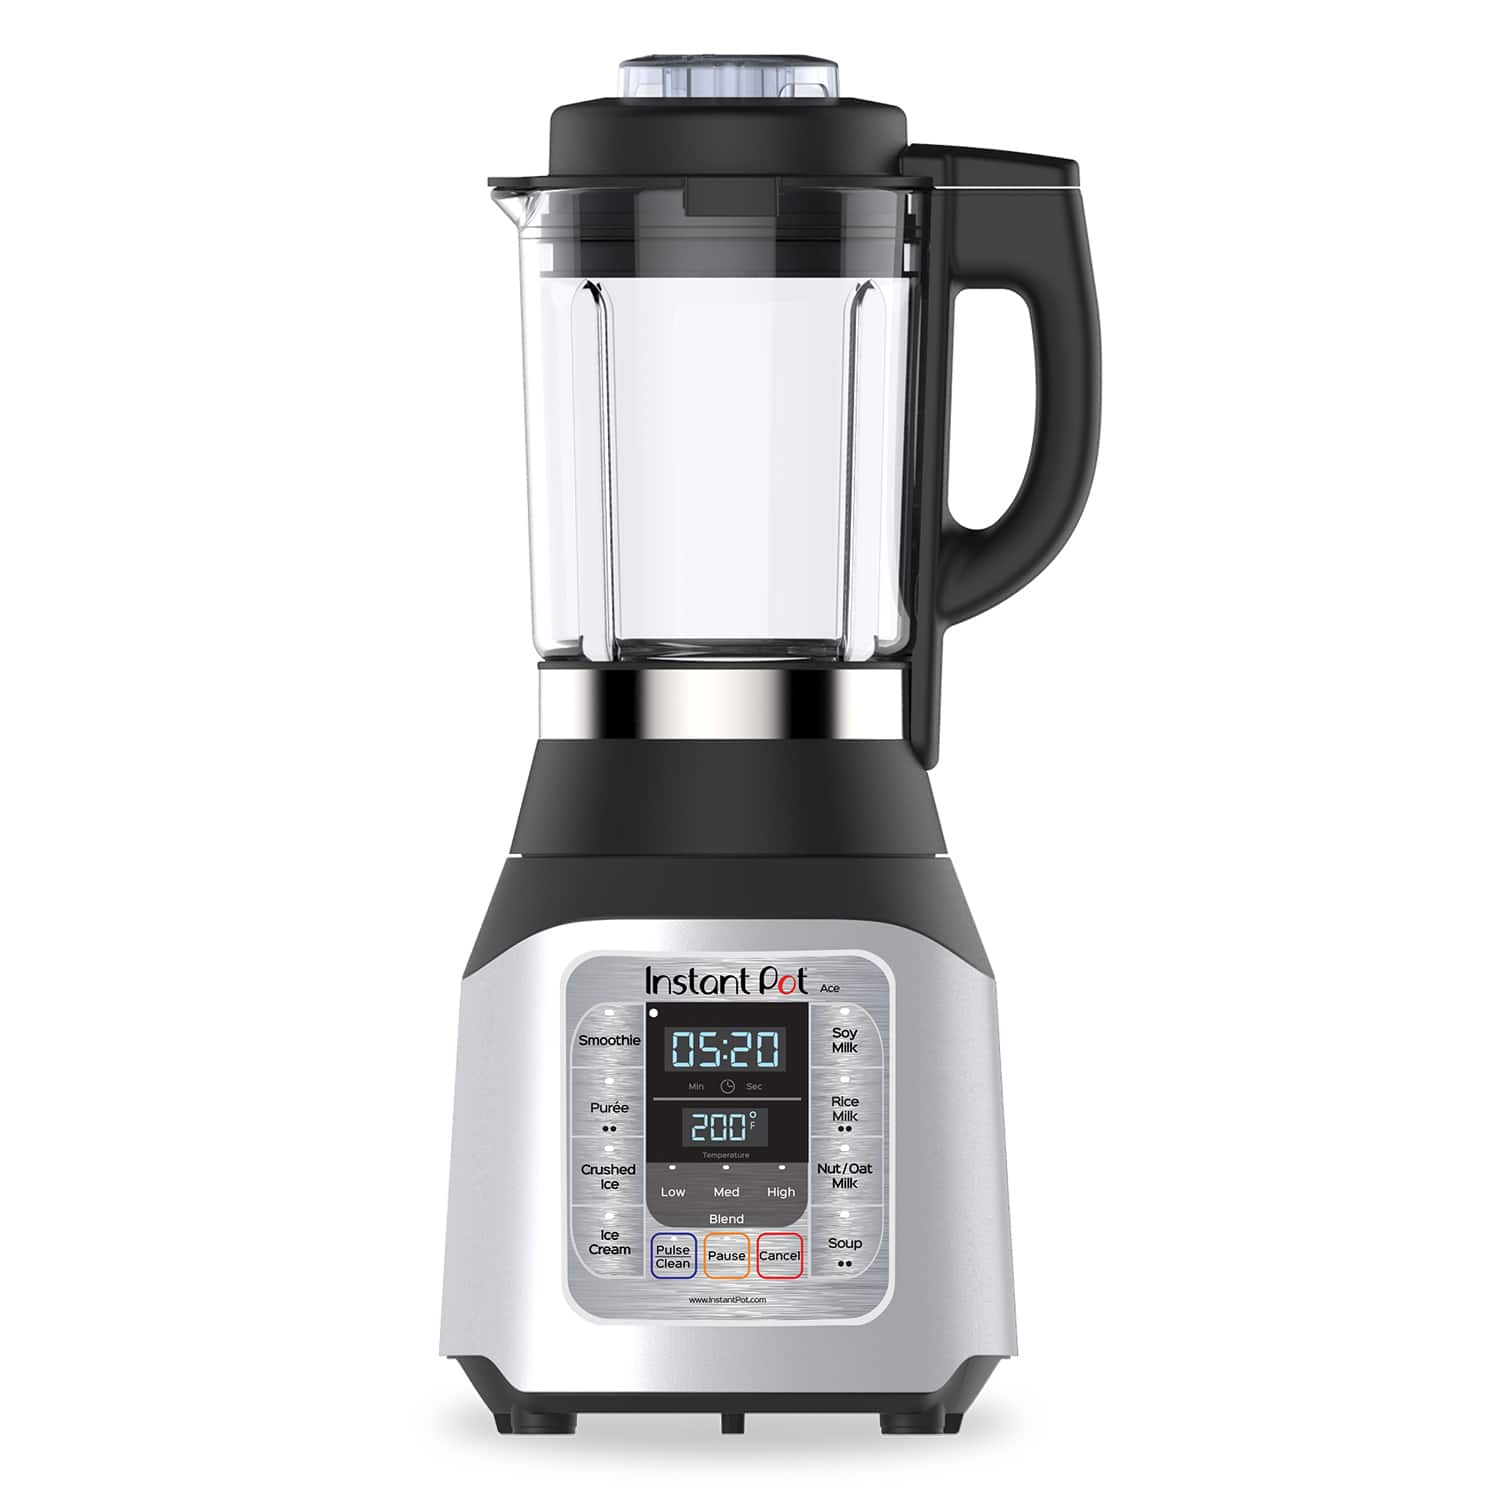 Instant Pot Ace 60 Cooking Blender - $19 - Walmart YMMV